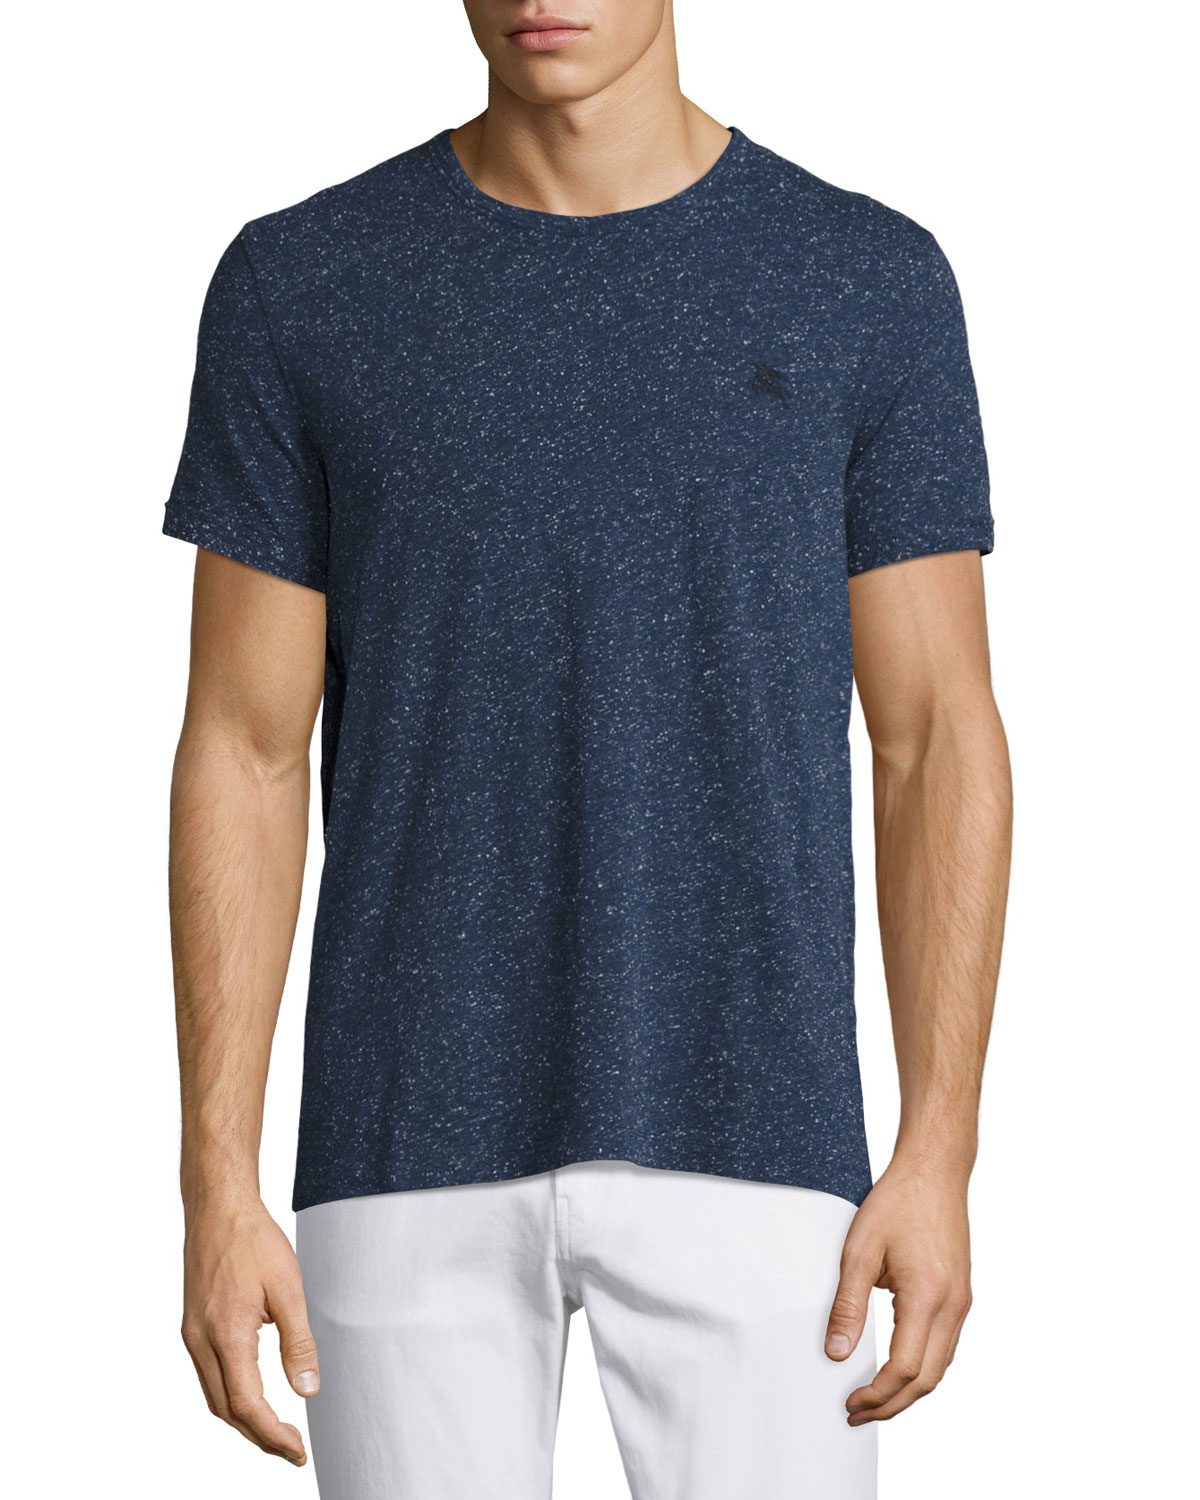 Millbrook Flecked Jersey T-Shirt, Dark Navy